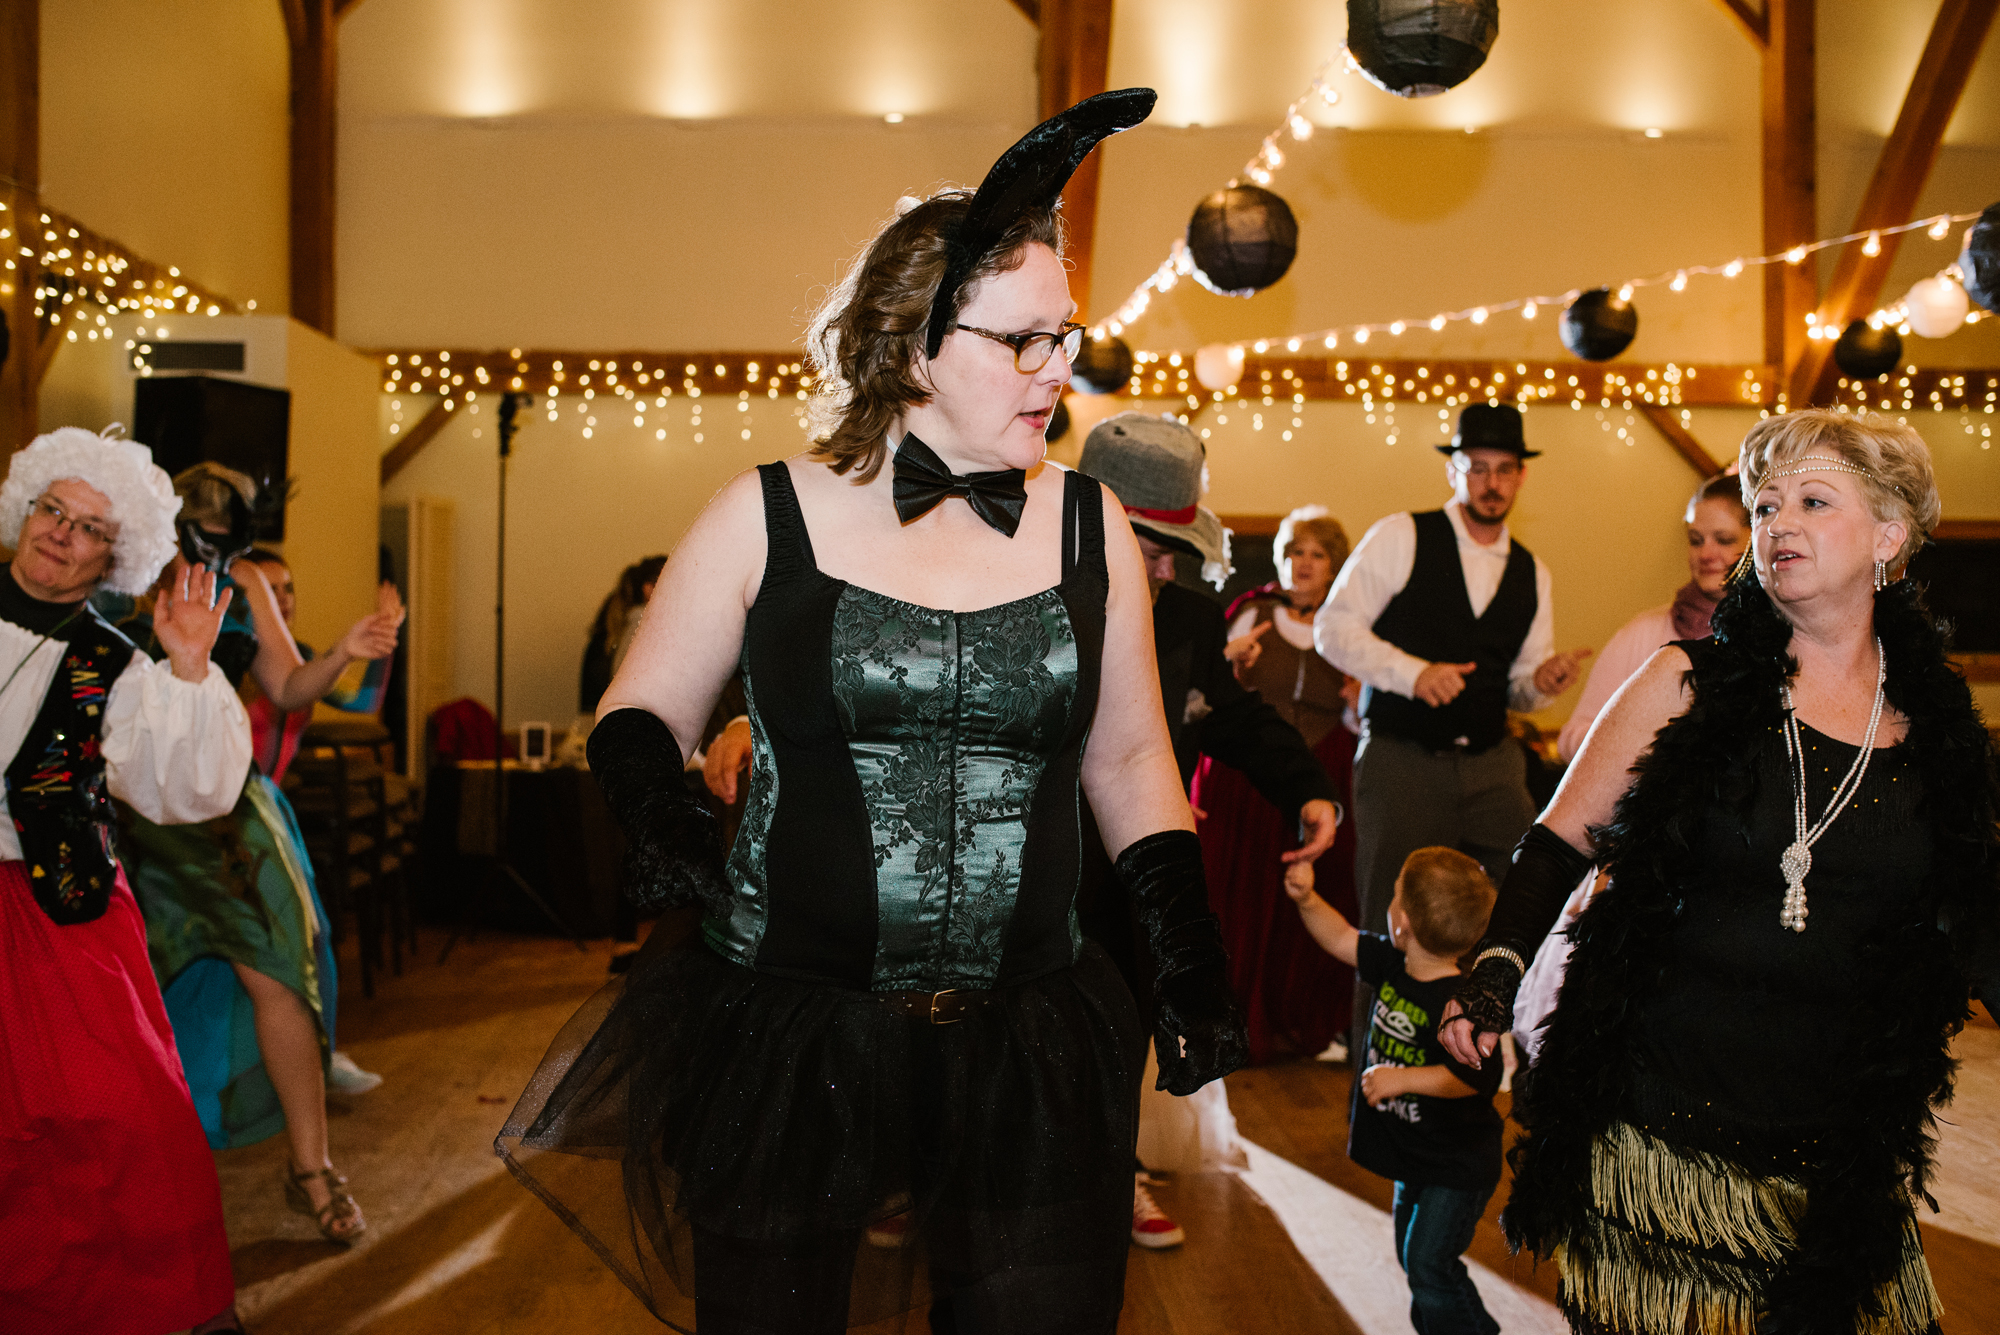 ann-arbor-michigan-halloween-themed-wedding-dancing-photos (5).jpg